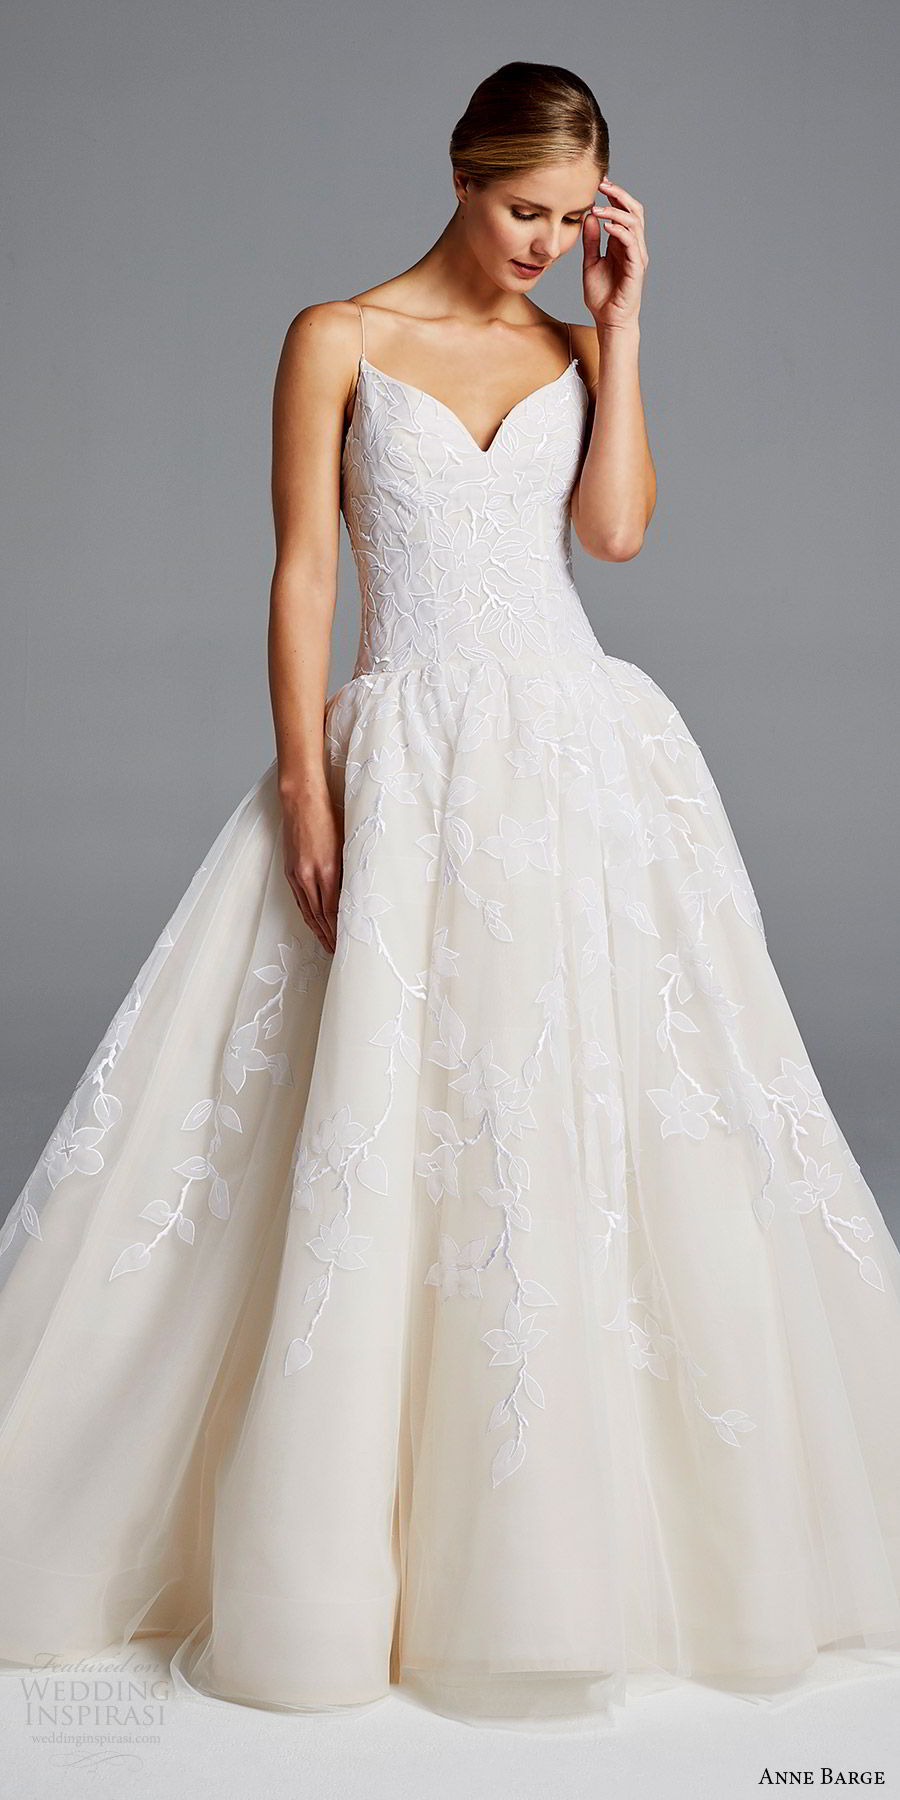 anne barge bridal spring 2019 sleeveless thin straps sweetheart drop waist lace ball gown wedding dress (maggie) mv romantic elegant